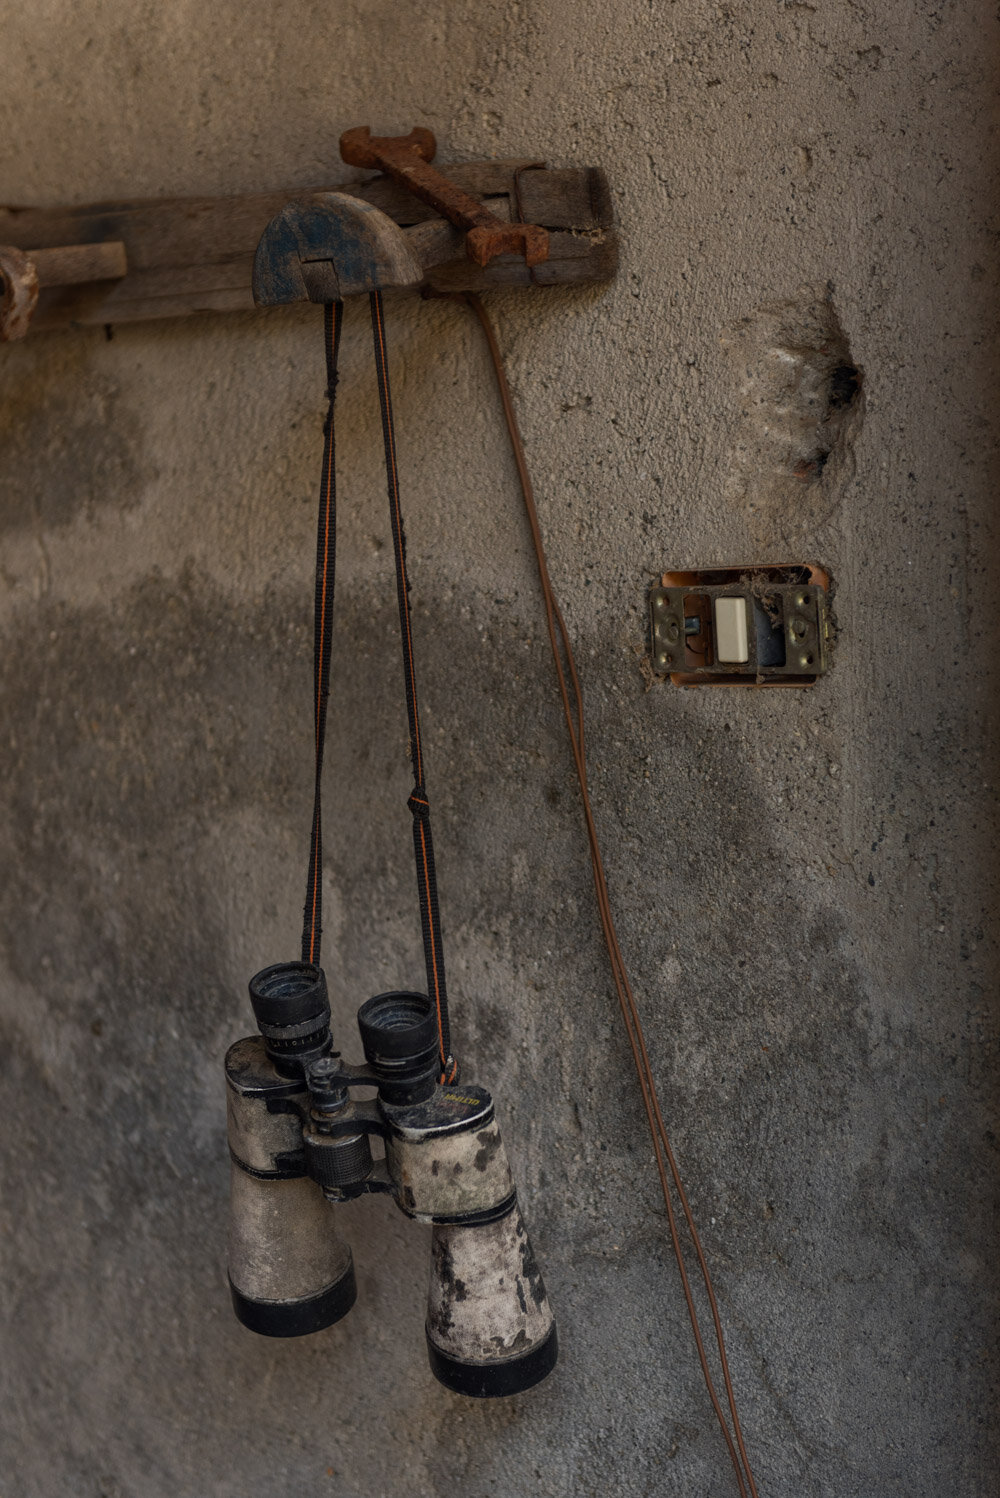 Binoculars on the outside of an abandoned house in Casalinuovo in the Aspromonte National Park, a town inhabited by only two shepherd brothers, August 2018.